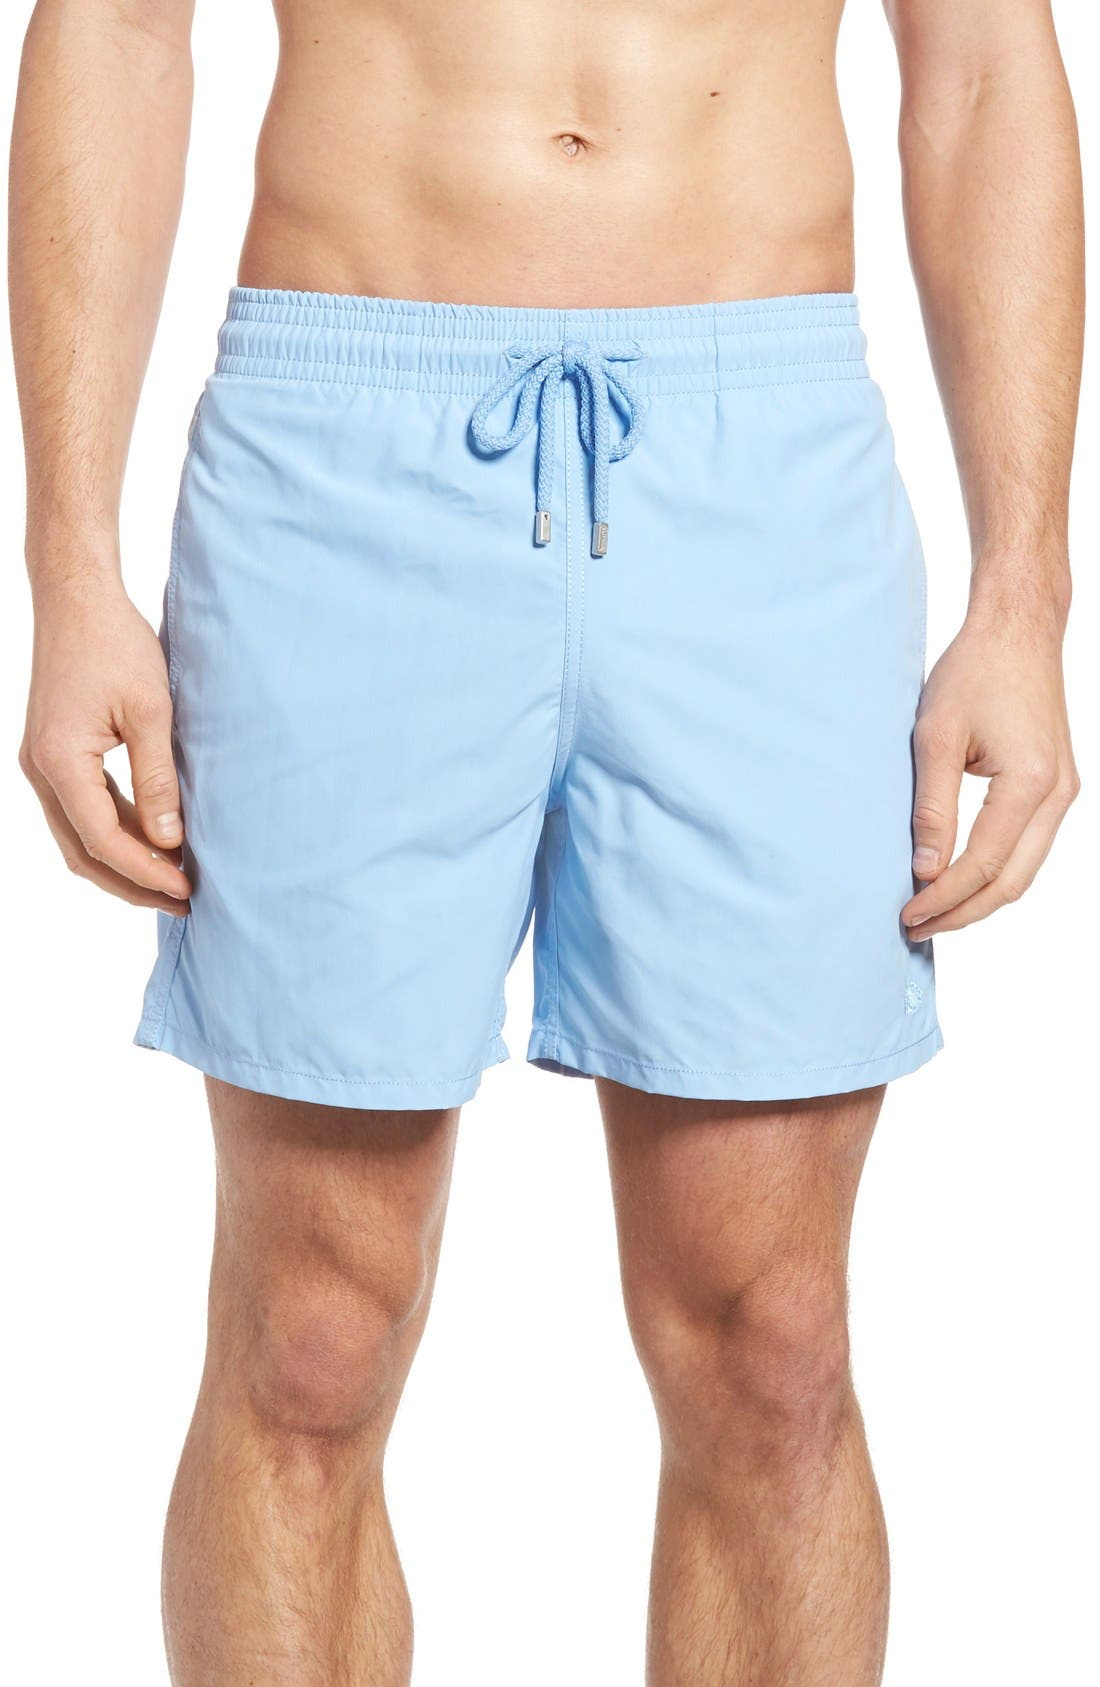 Coral Water Reactive Swim Trunks,                         Main,                         color,